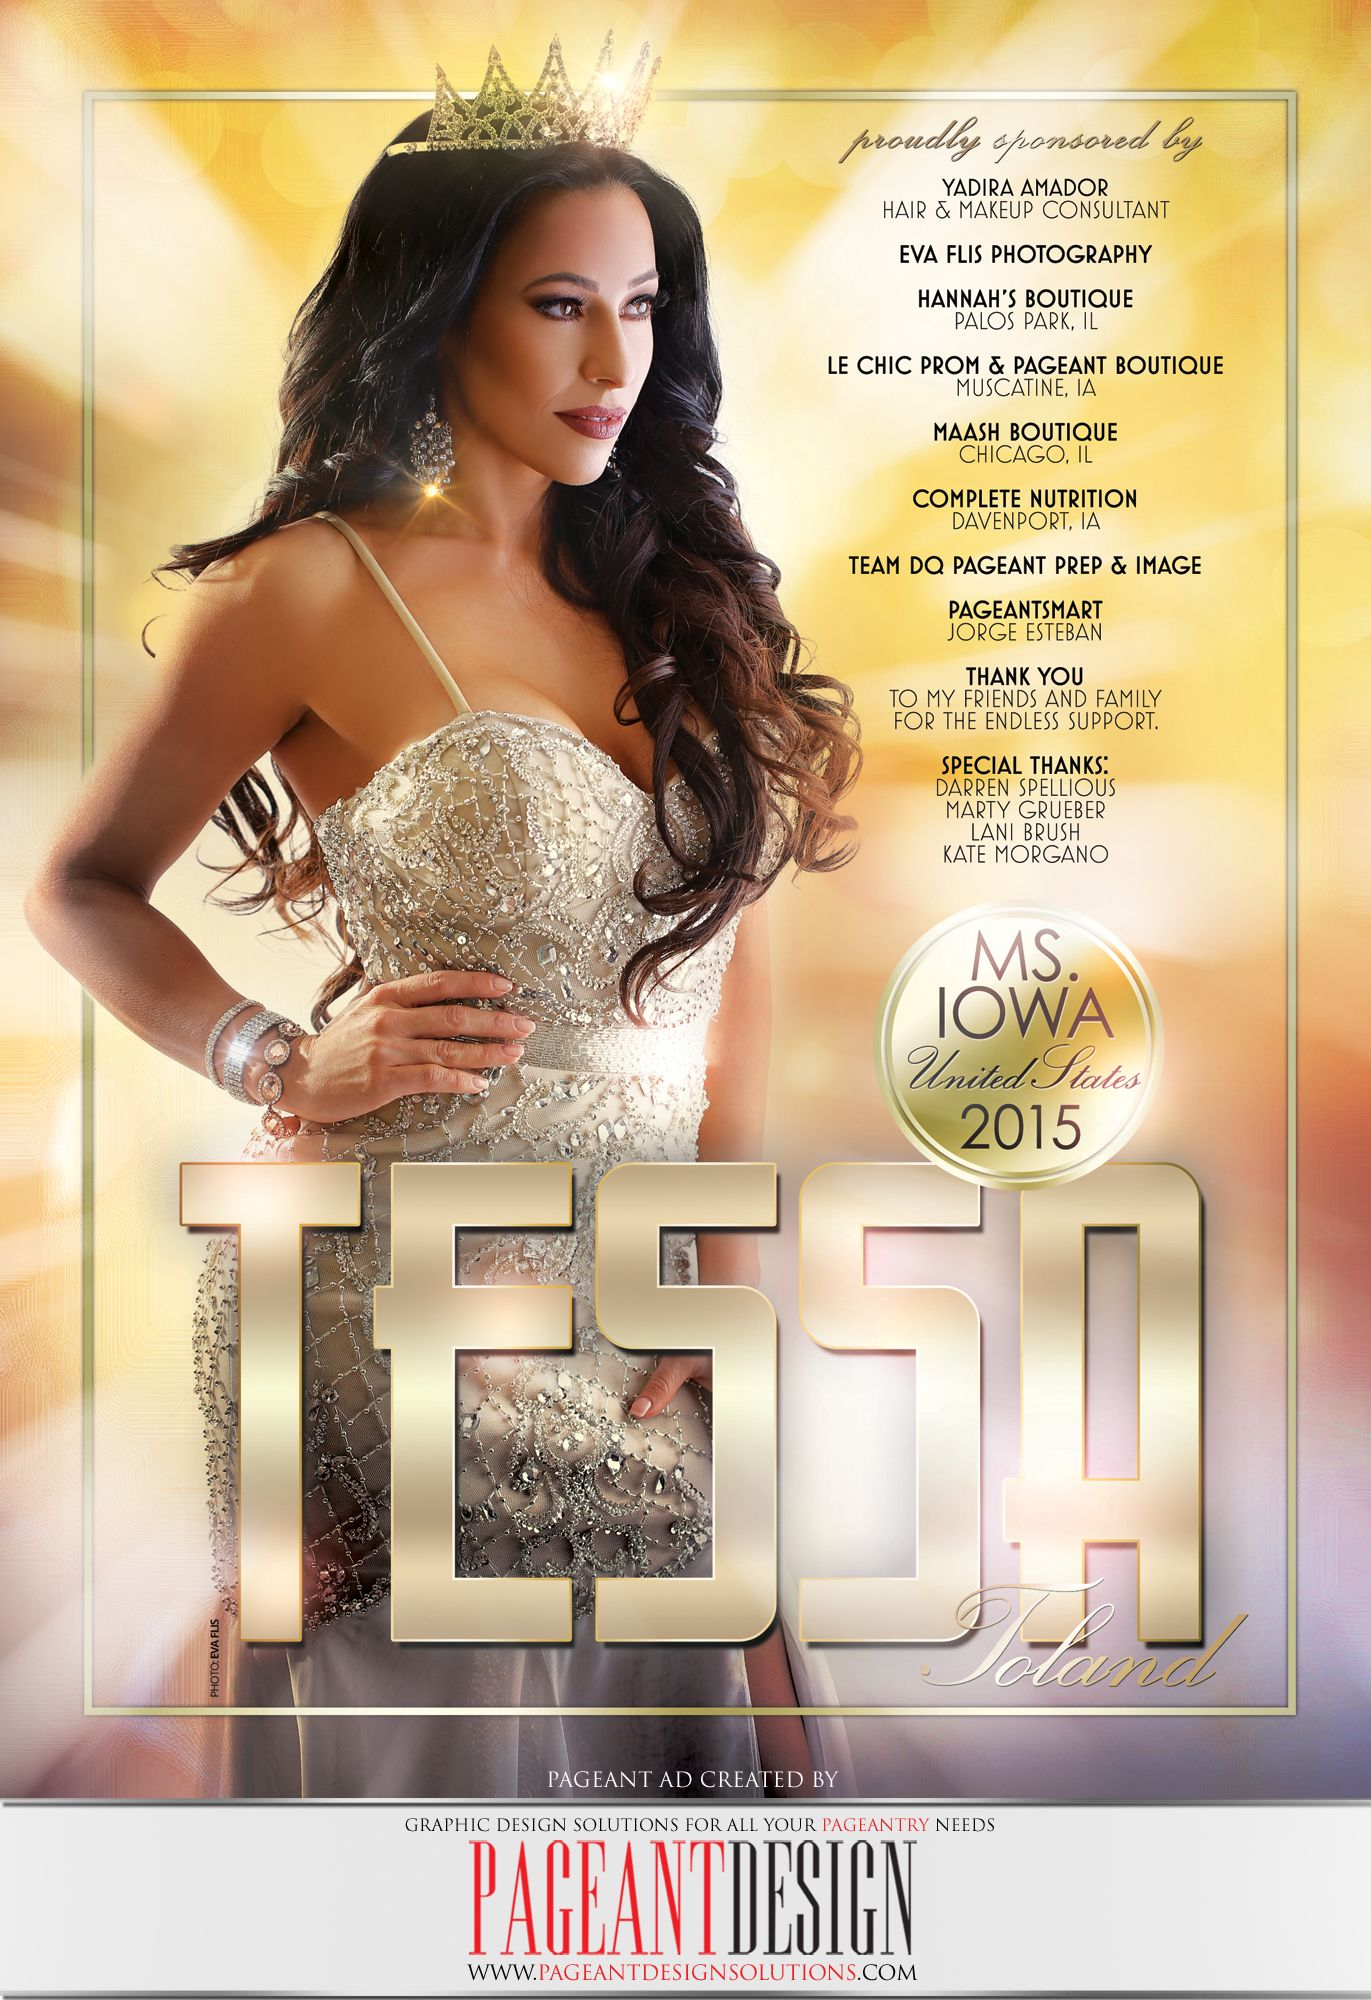 Awesomepageantad Designed For Tessa Toland Ms Iowa United States Get In Touch If You Need An Awesome Looking Pr Pageant Systems Pageant Prep Pageantry